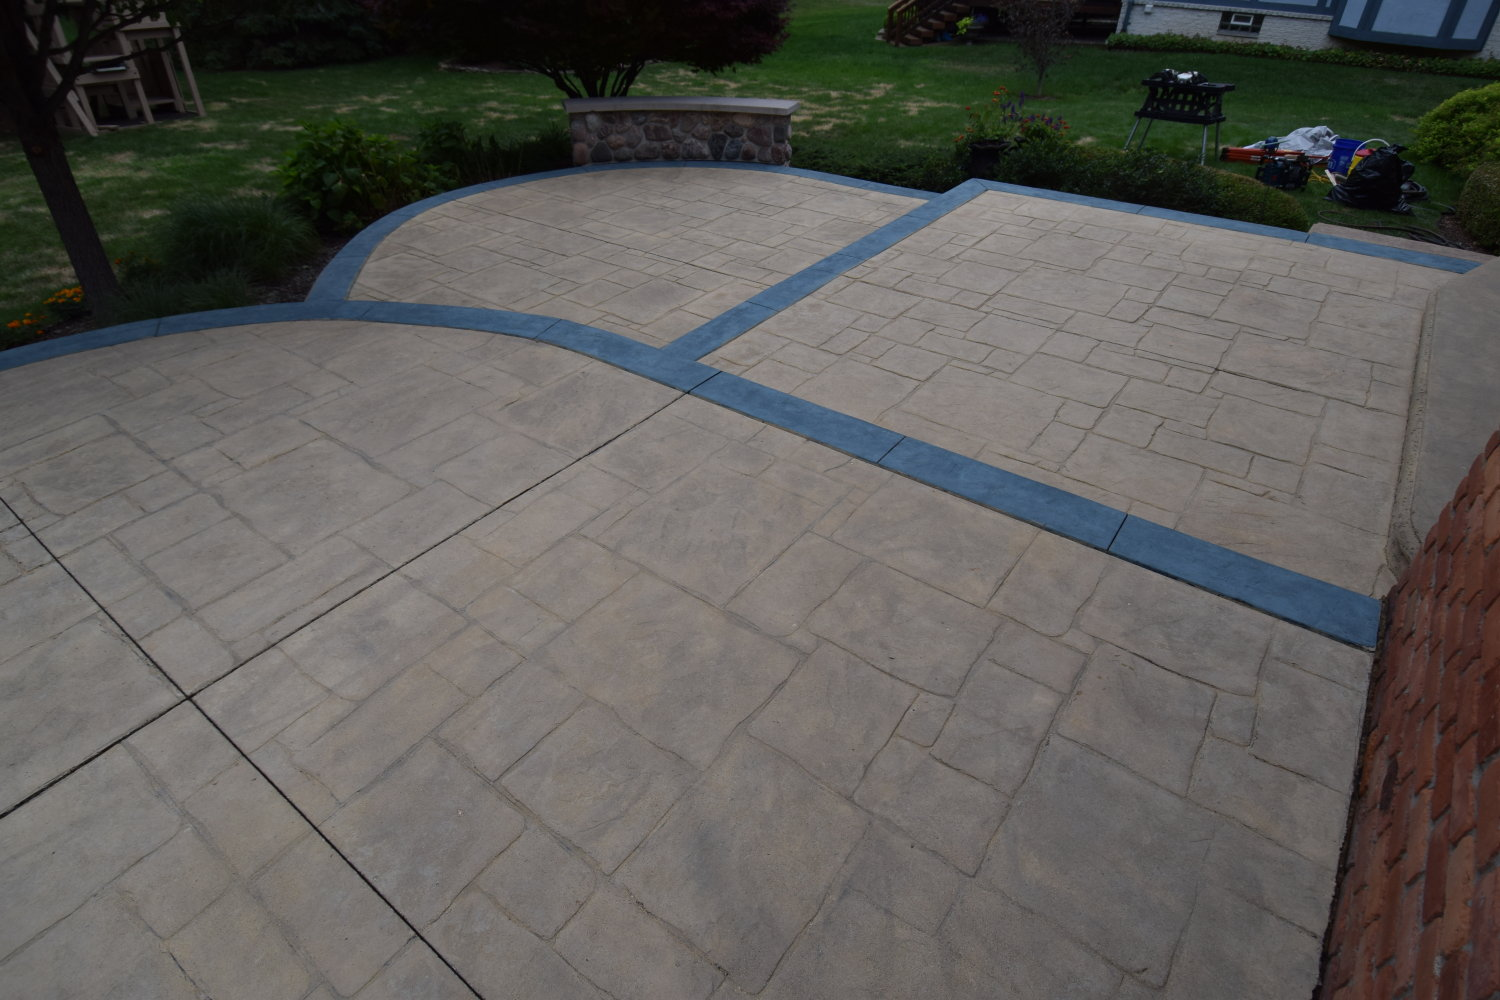 Stripped Patio Facing South.jpg